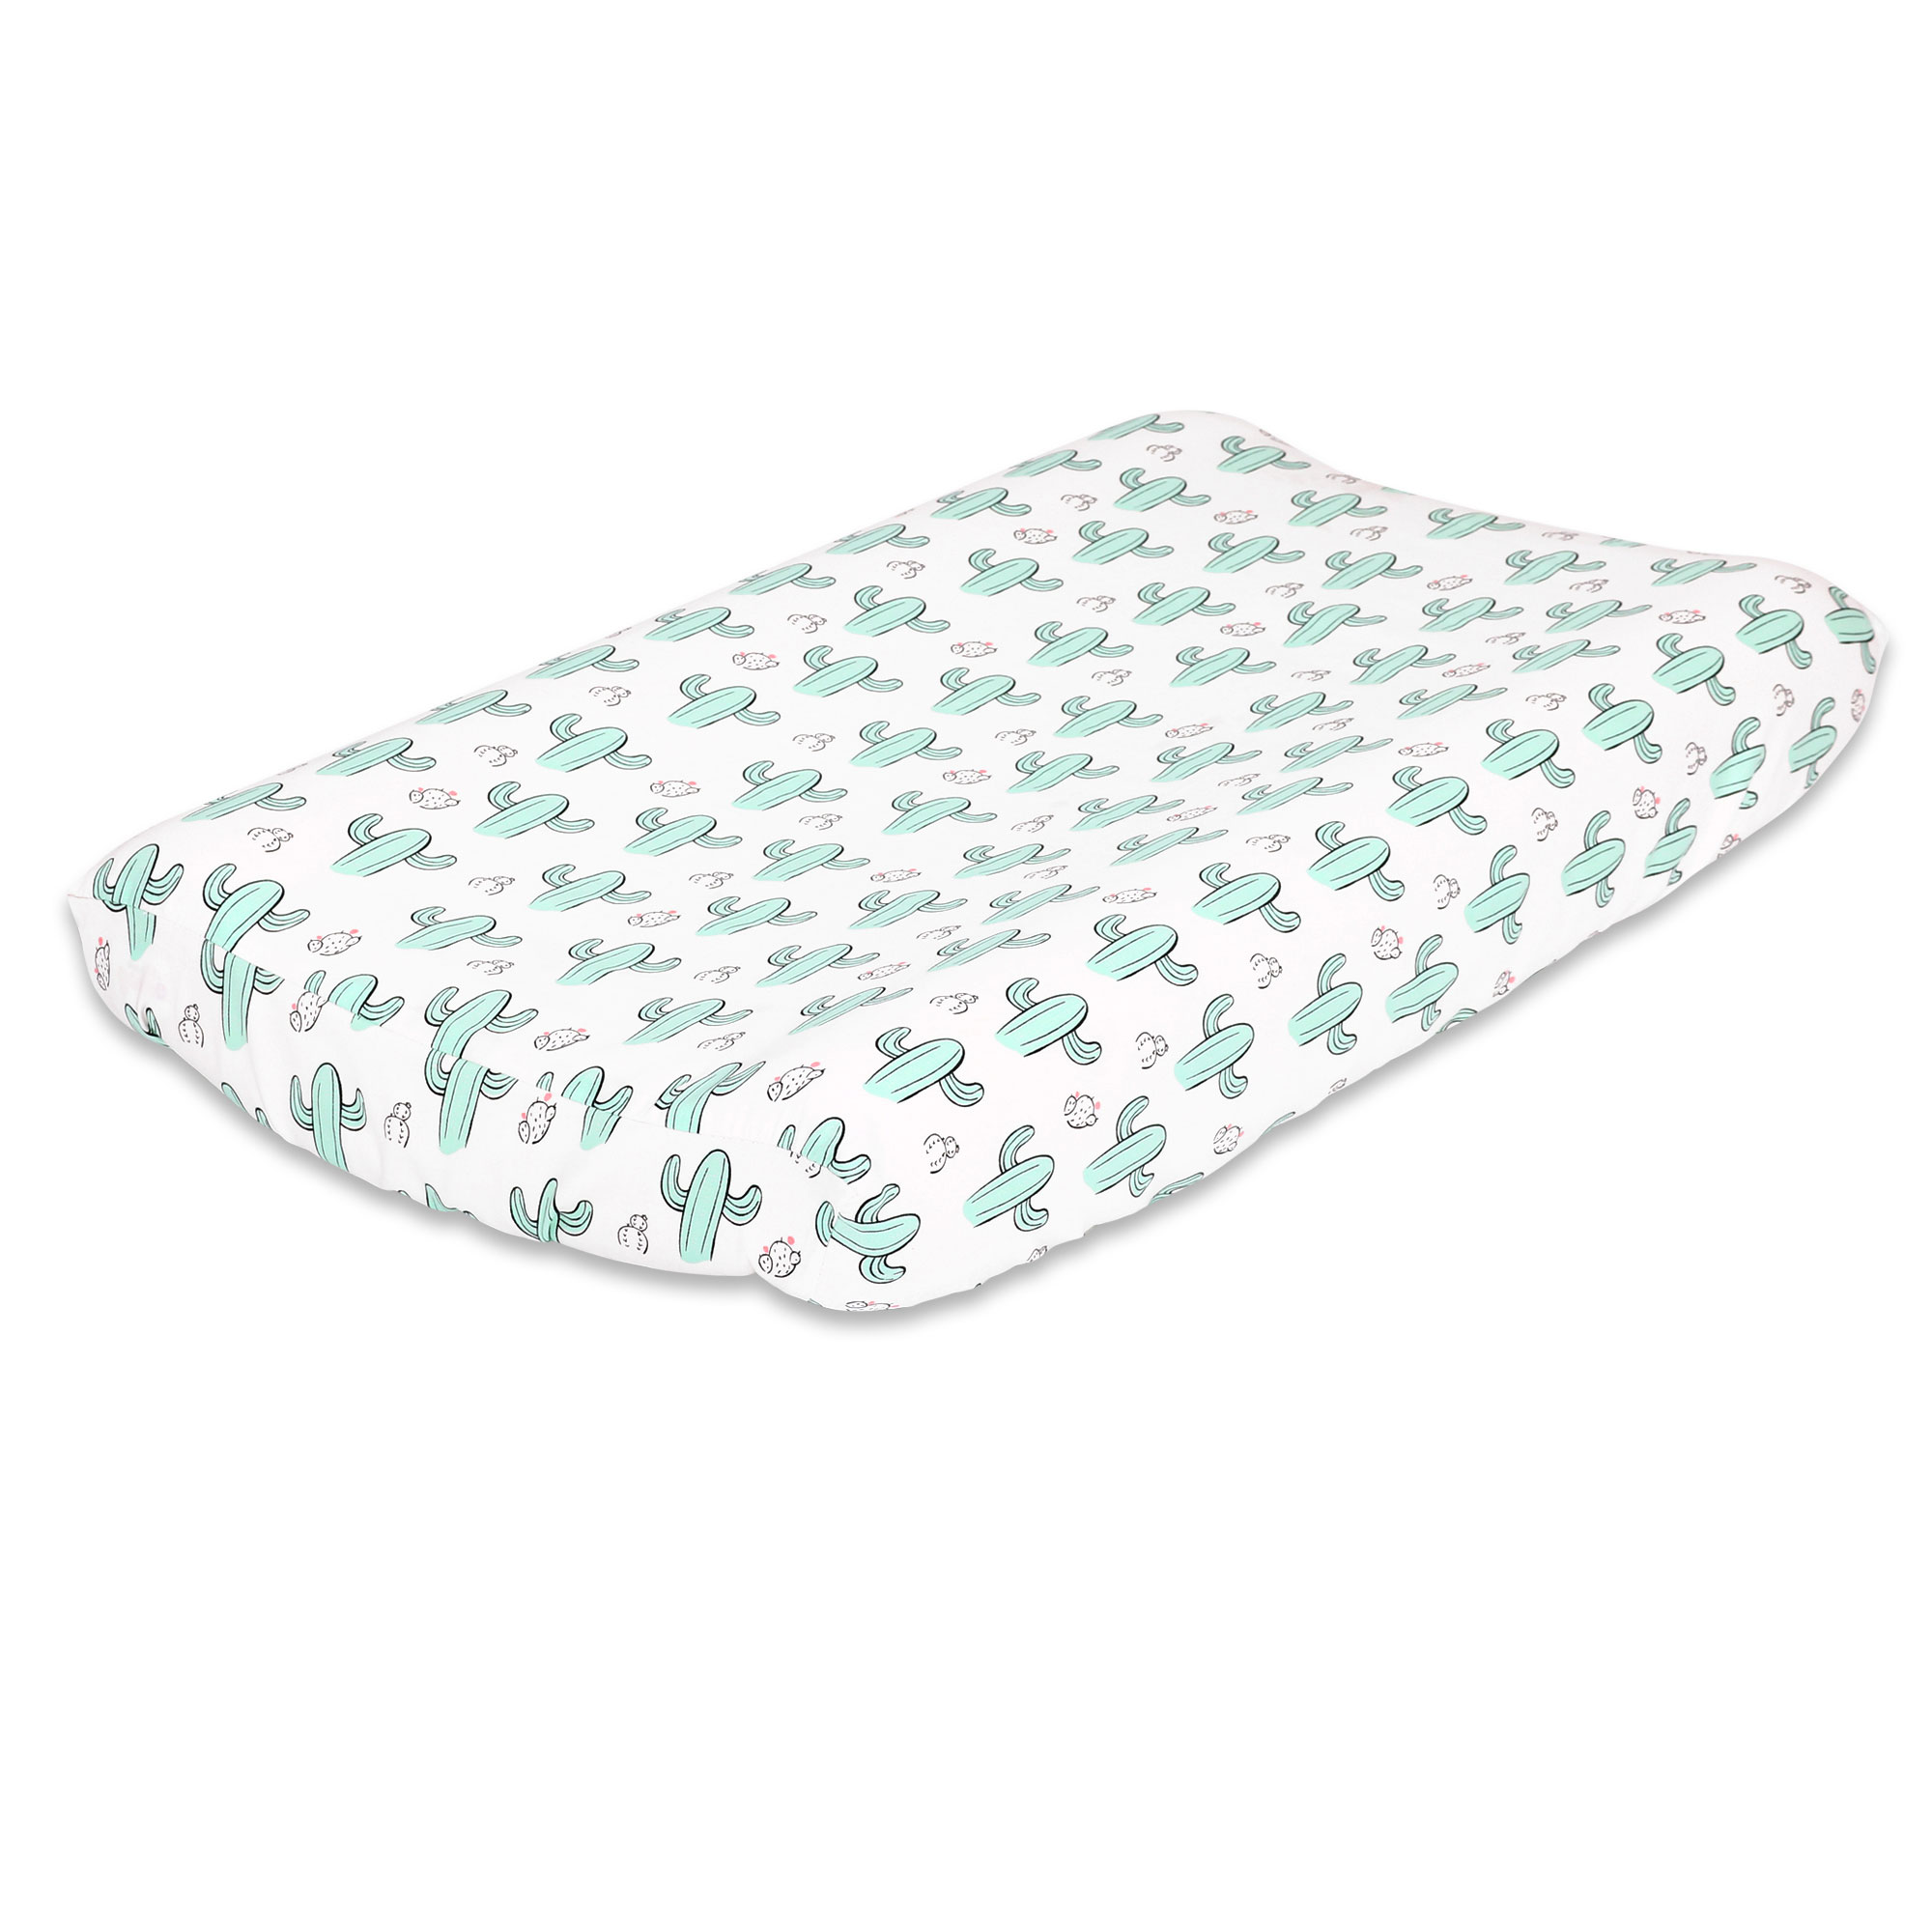 Mint Green Cactus Print Baby Changing Pad Cover by The Peanut Shell